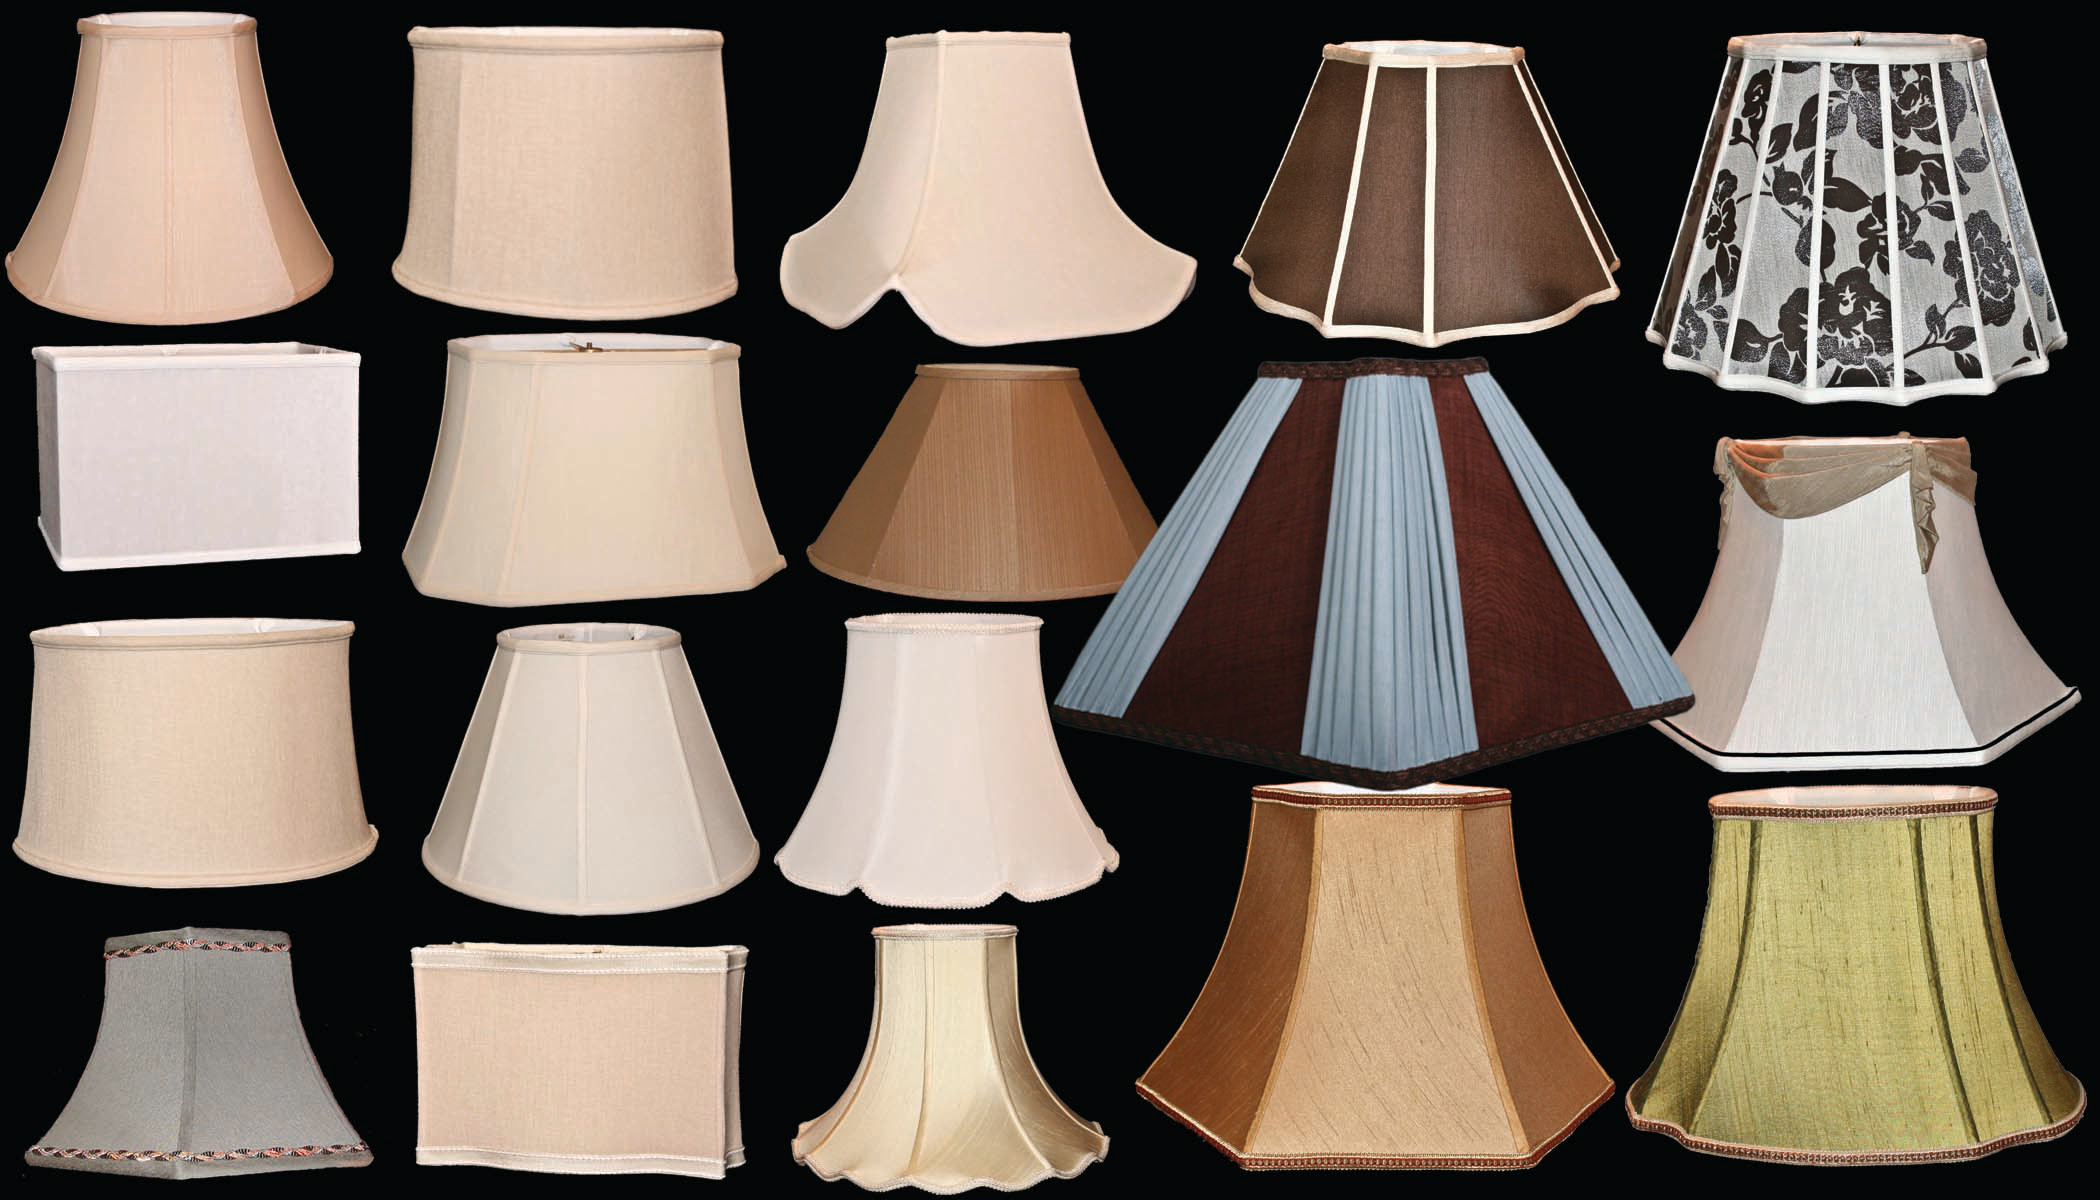 Lampshades made in usa lamp shade manufacturer morlee lampshade aloadofball Images